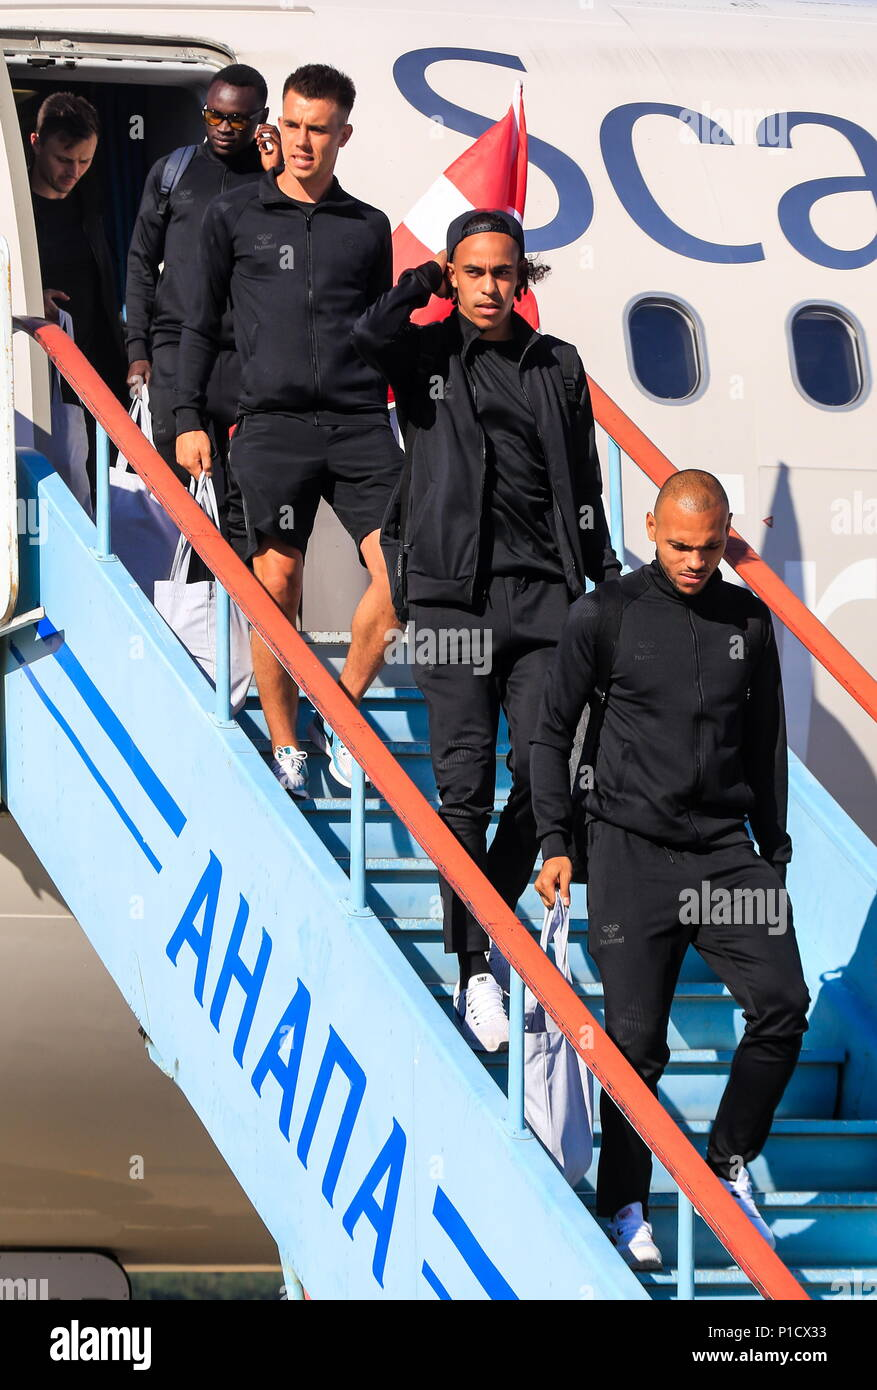 KRASNODAR TERRITORY, RUSSIA - JUNE 11, 2018: Pione Sisto, Jonas Knudsen, Yussuf Poulsen and Mathias Jorgensen (L-R) of the Danish national football team welcomed at Anapa Airport ahead of the 2018 FIFA World Cup scheduled to start on June 14. Valery Matytsin/TASS - Stock Image